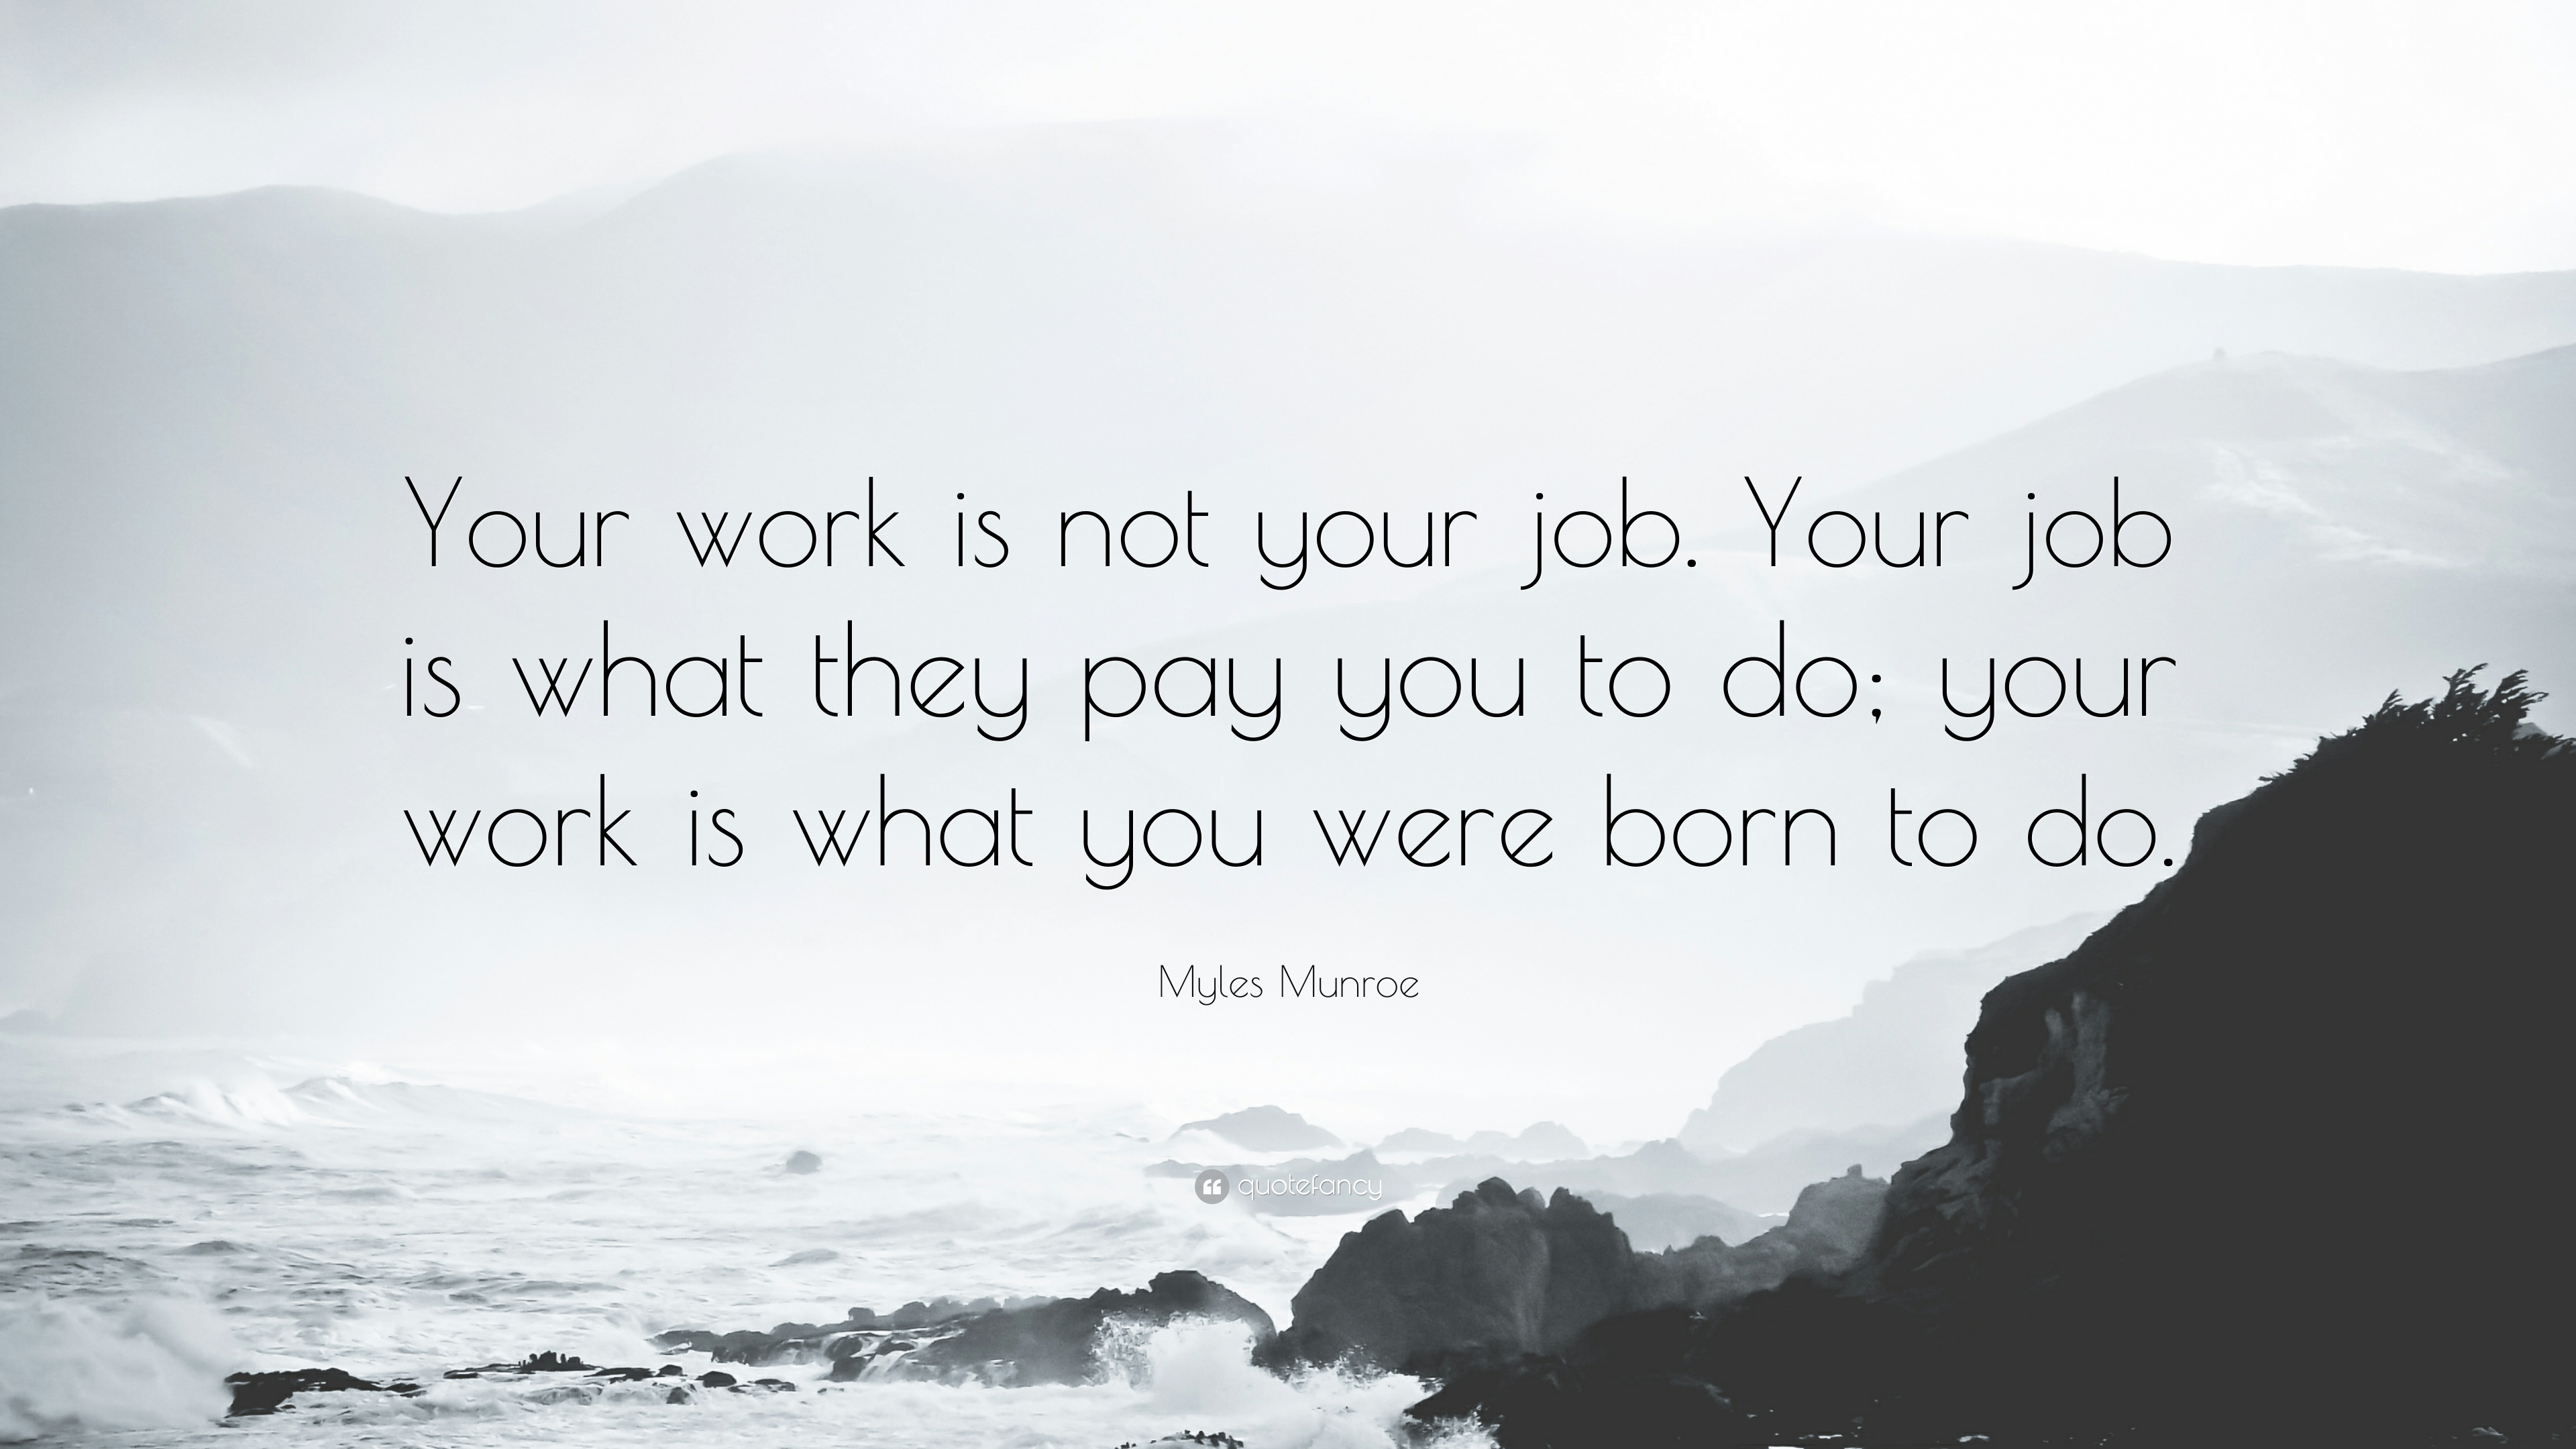 myles munroe quote your work is not your job your job is what